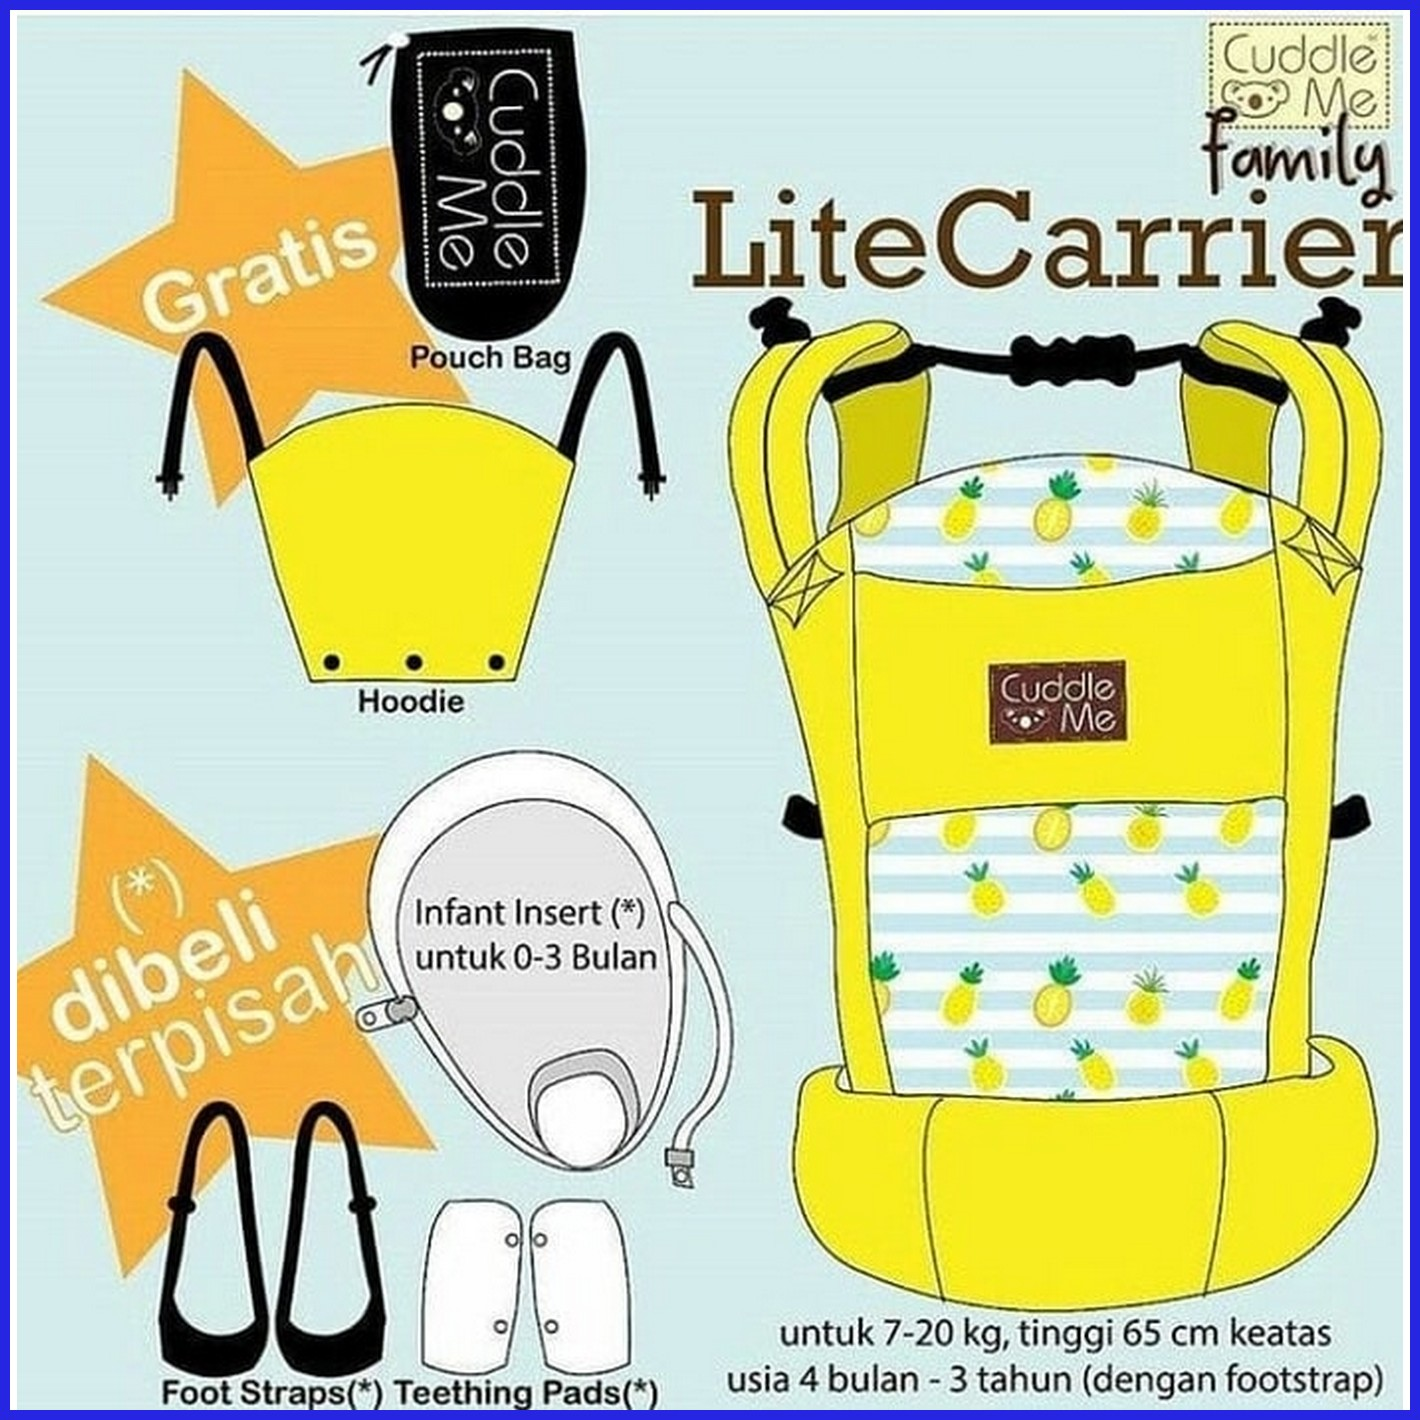 ... Cuddle Me Lite Carrier QUADRANTS Gendongan CudlleMe ...